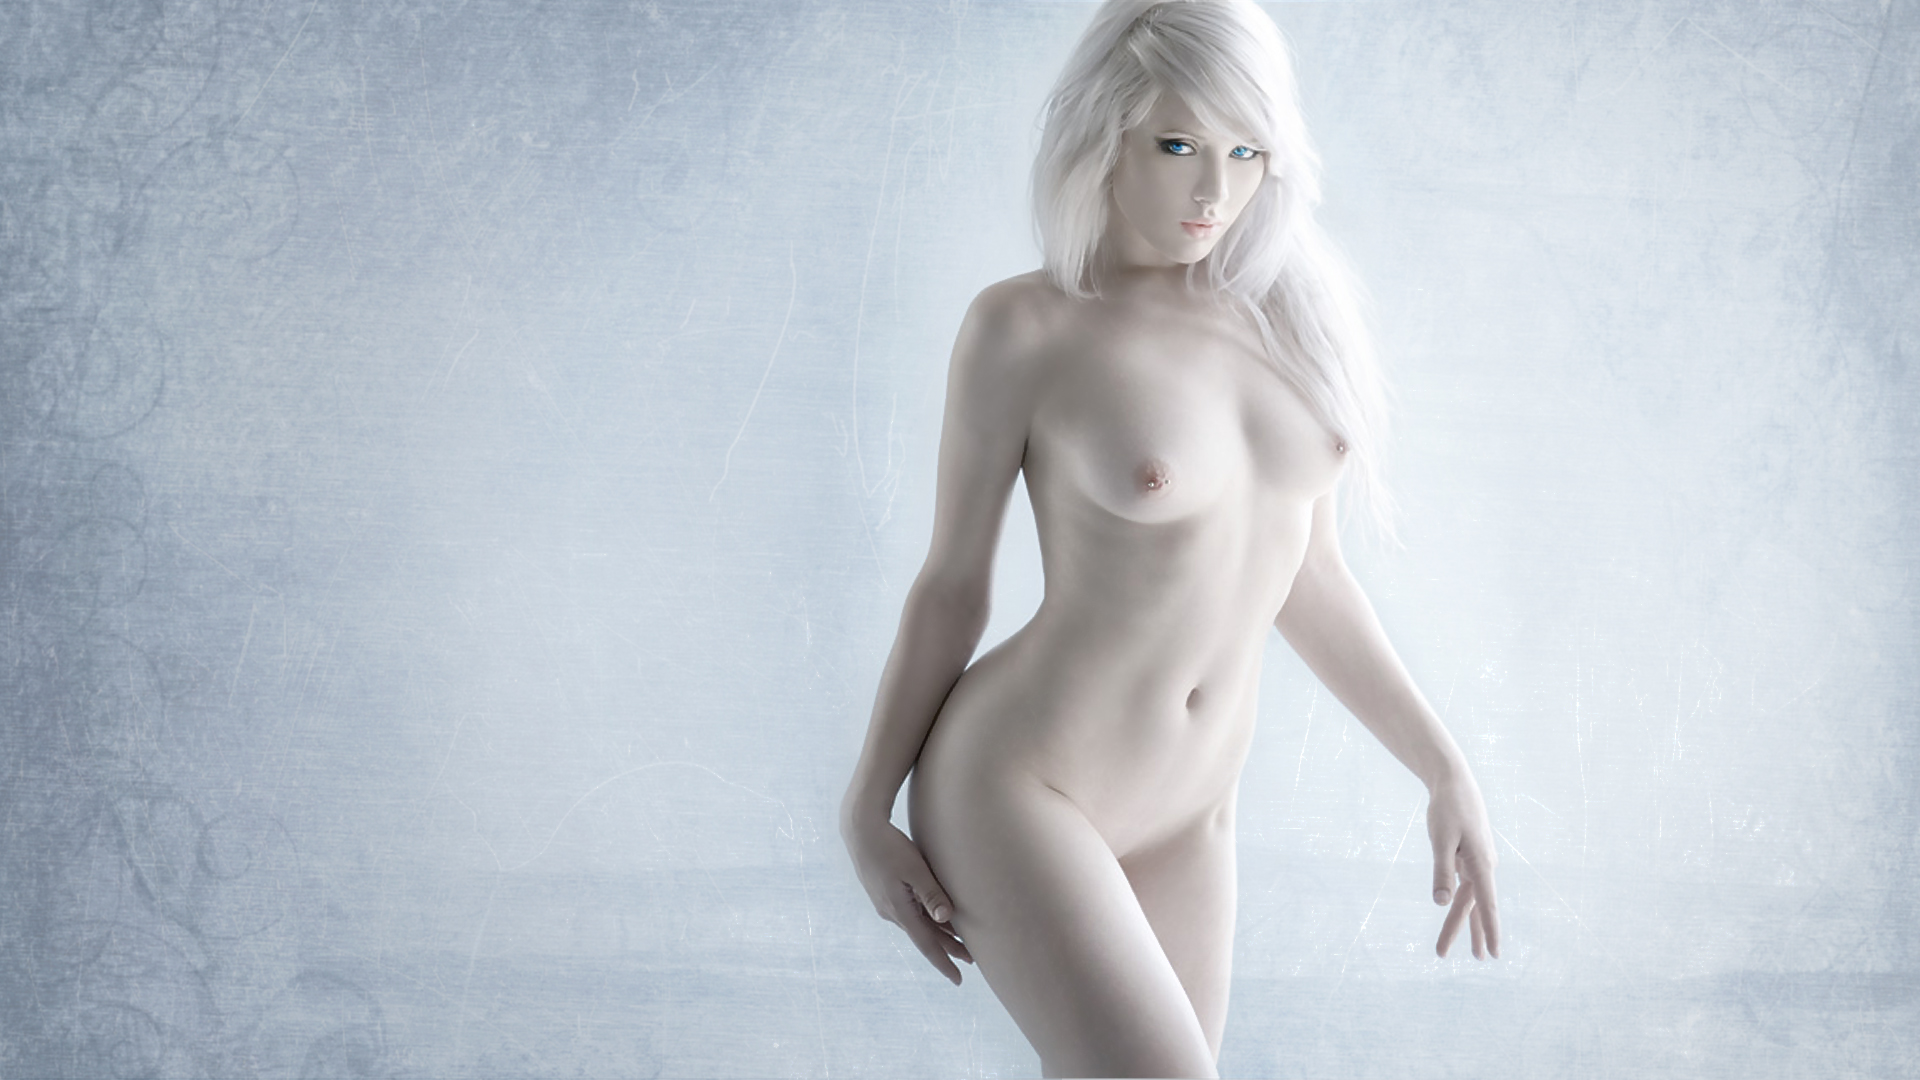 Hot albino woman